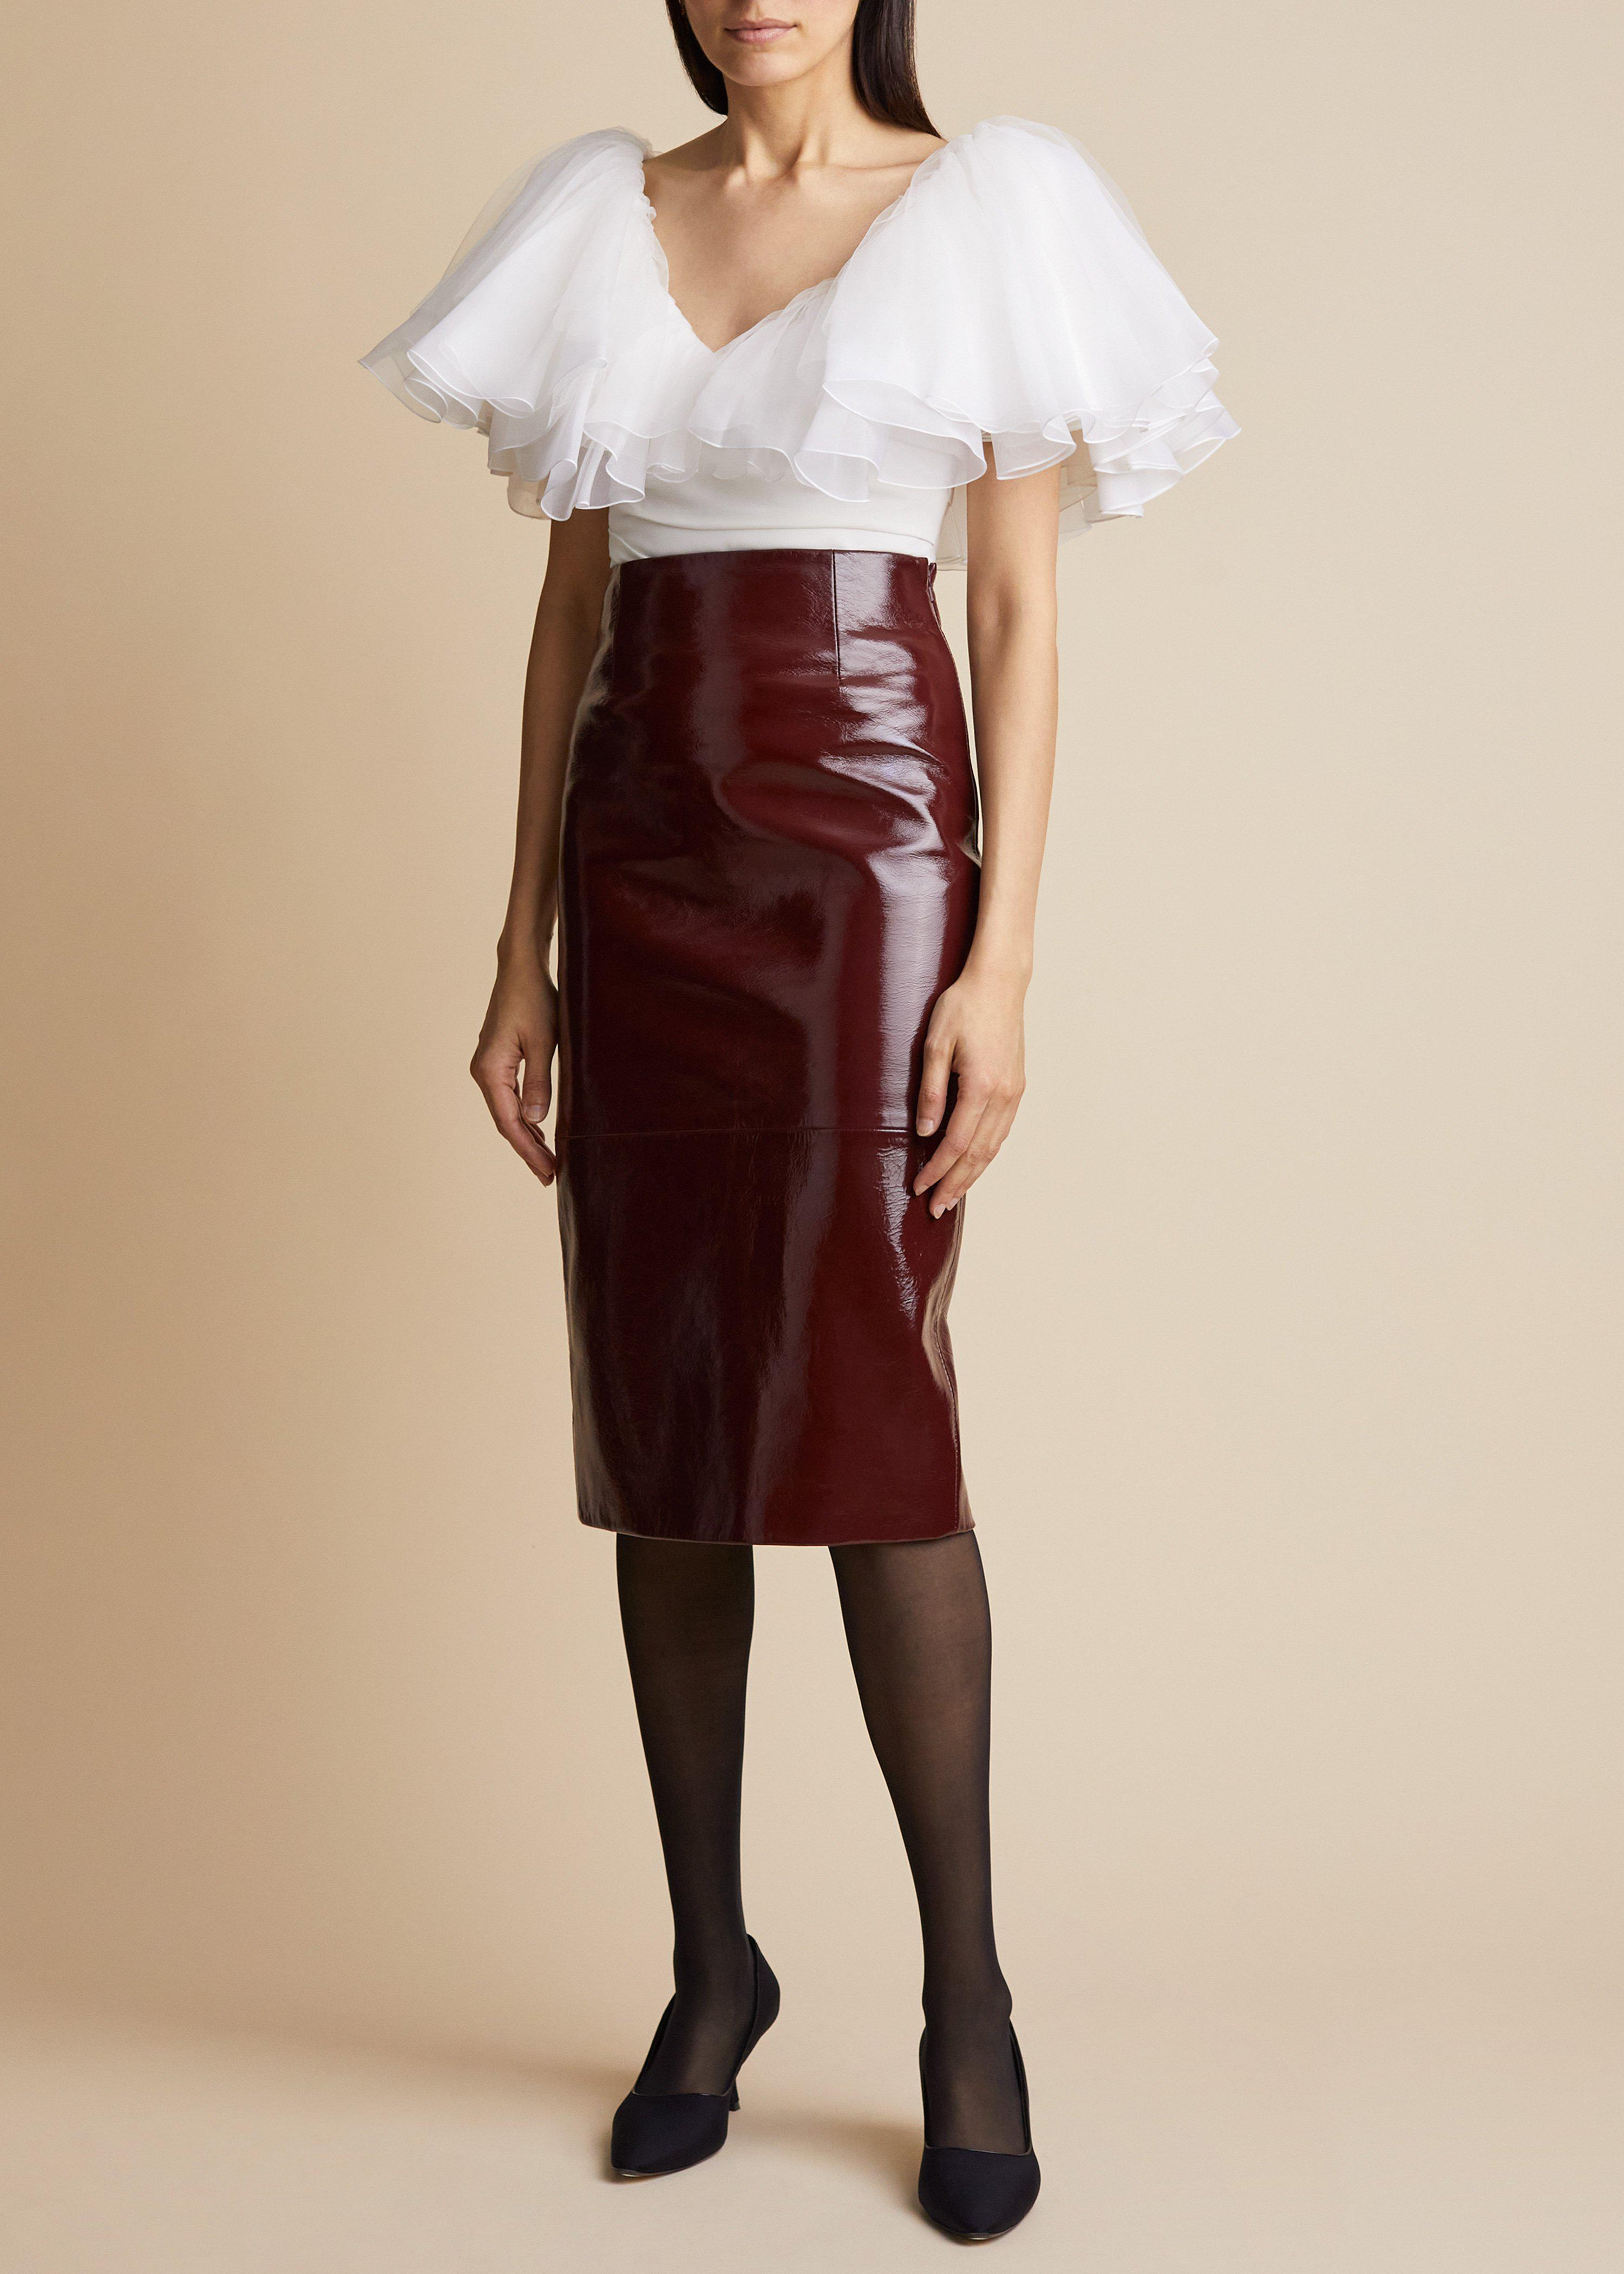 The May Skirt in Bordeaux Patent Leather